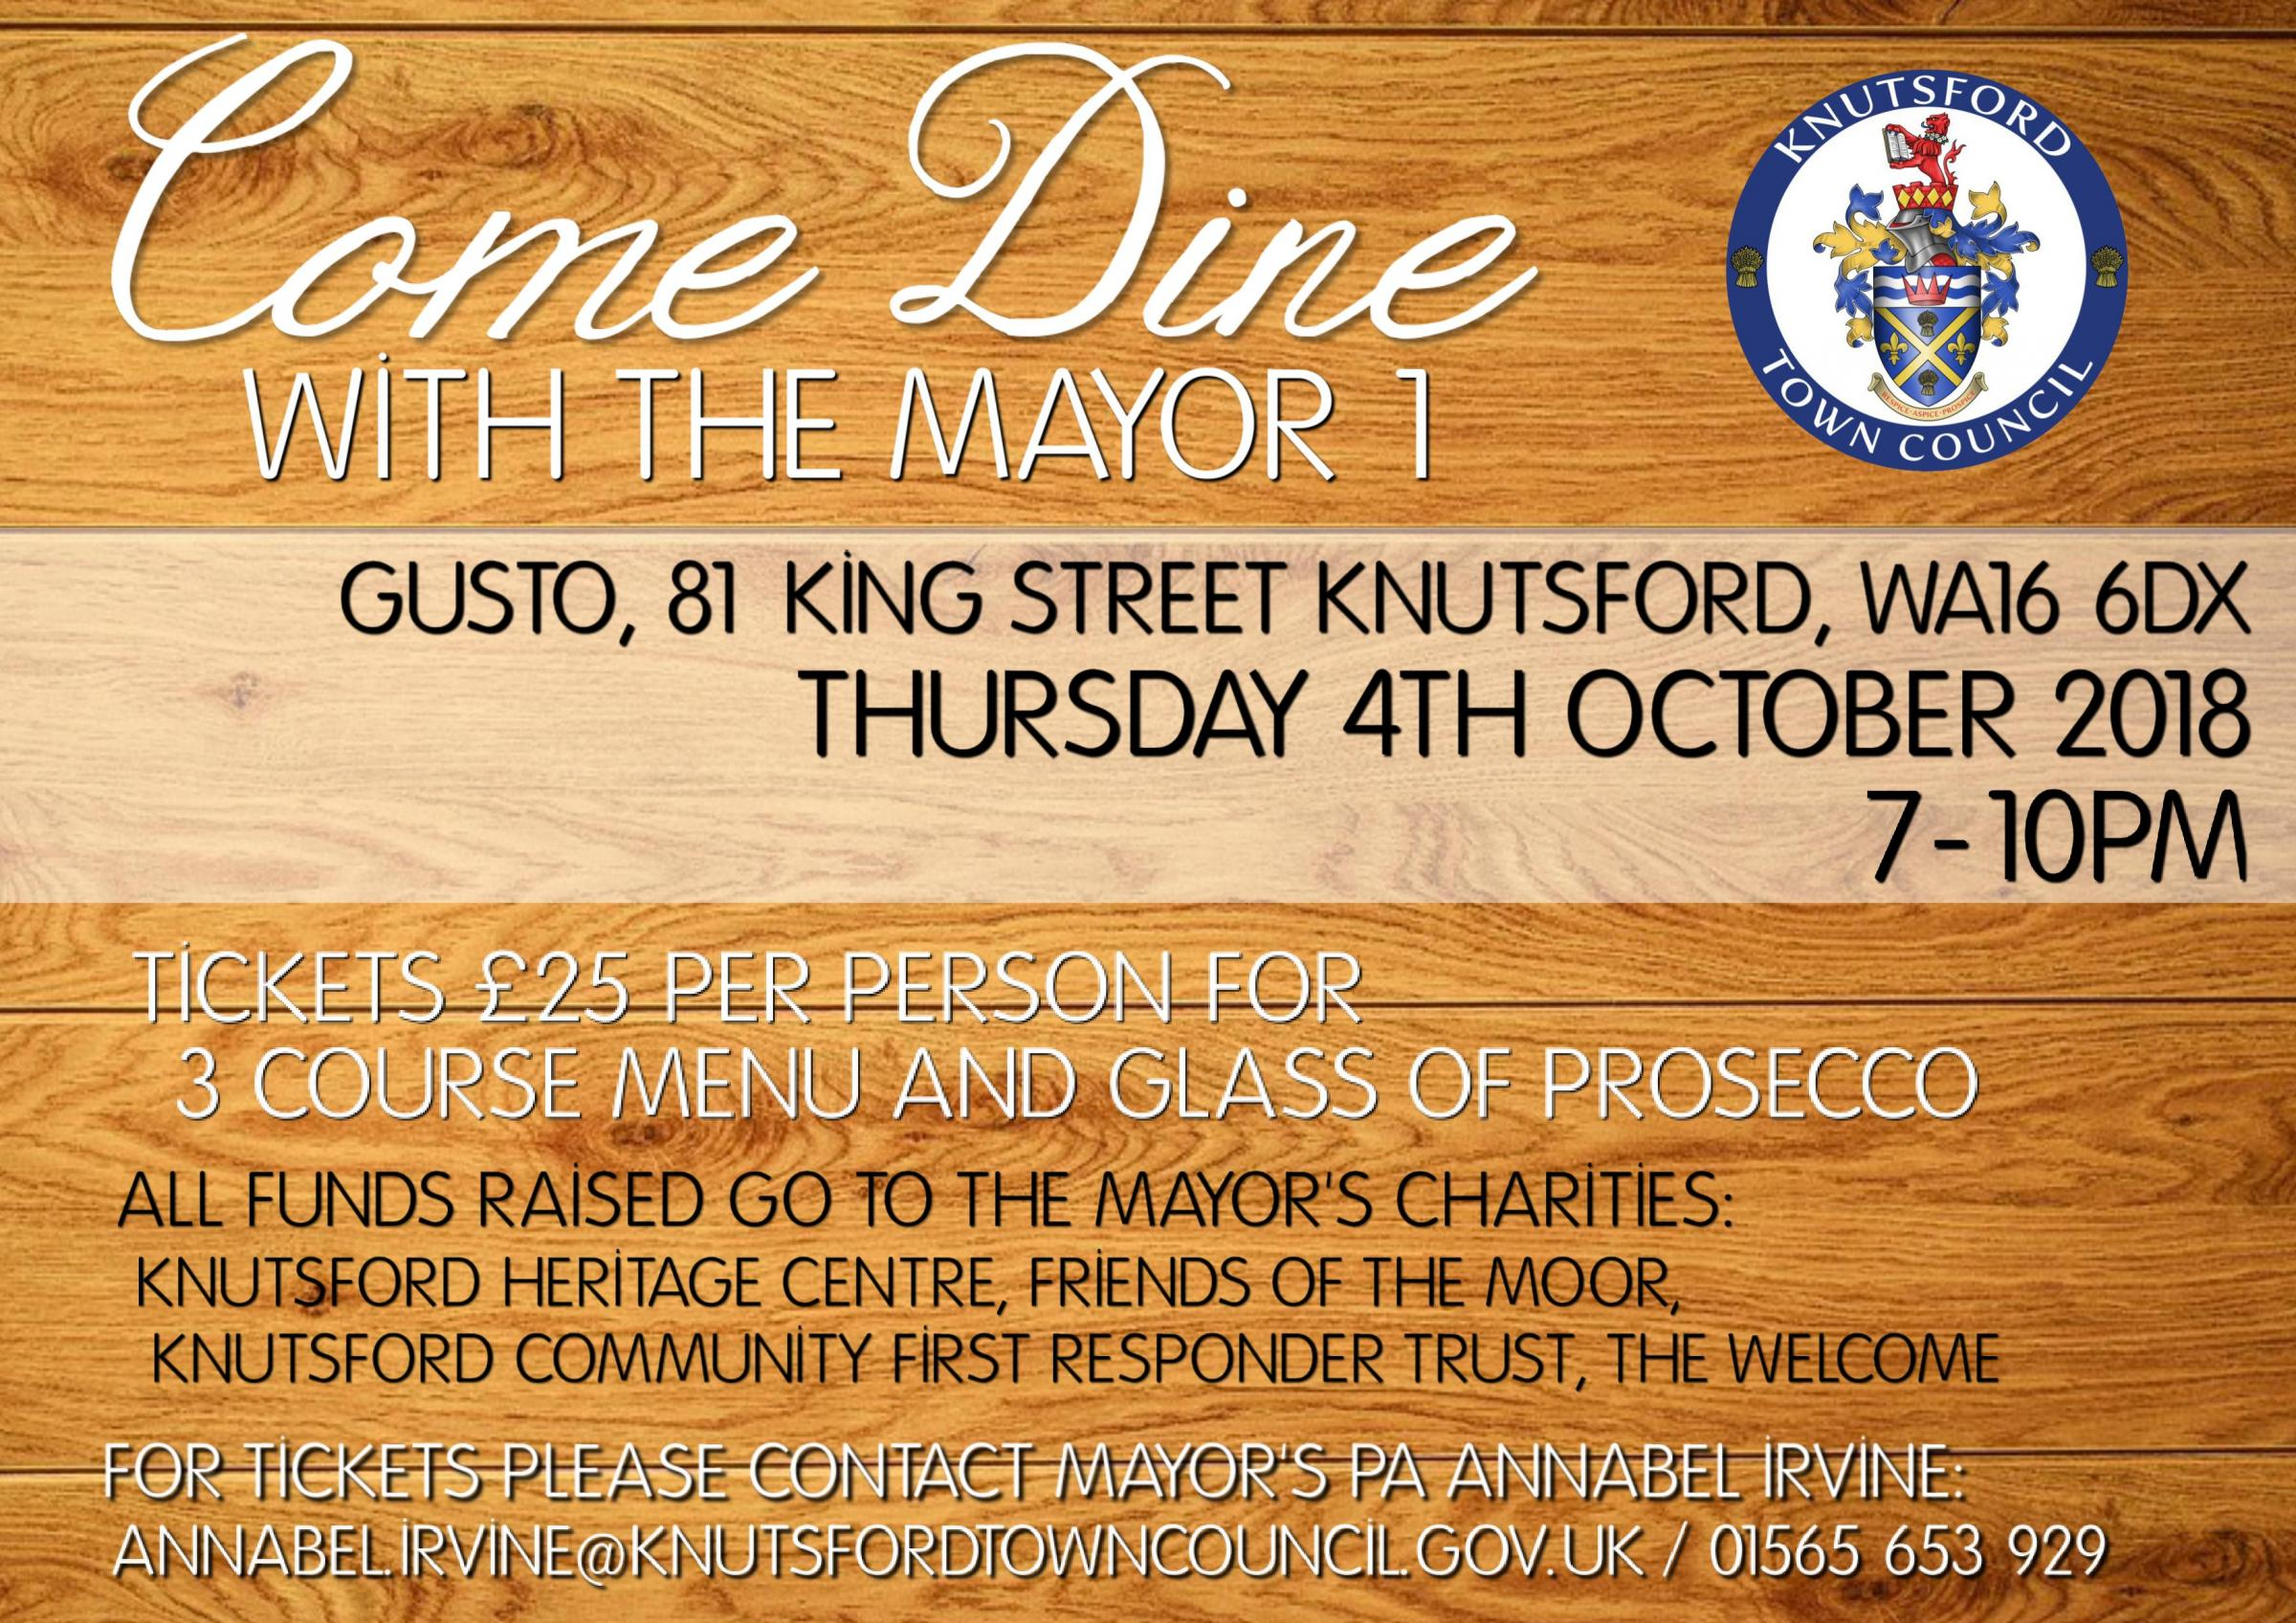 Come Dine with the Mayor 1